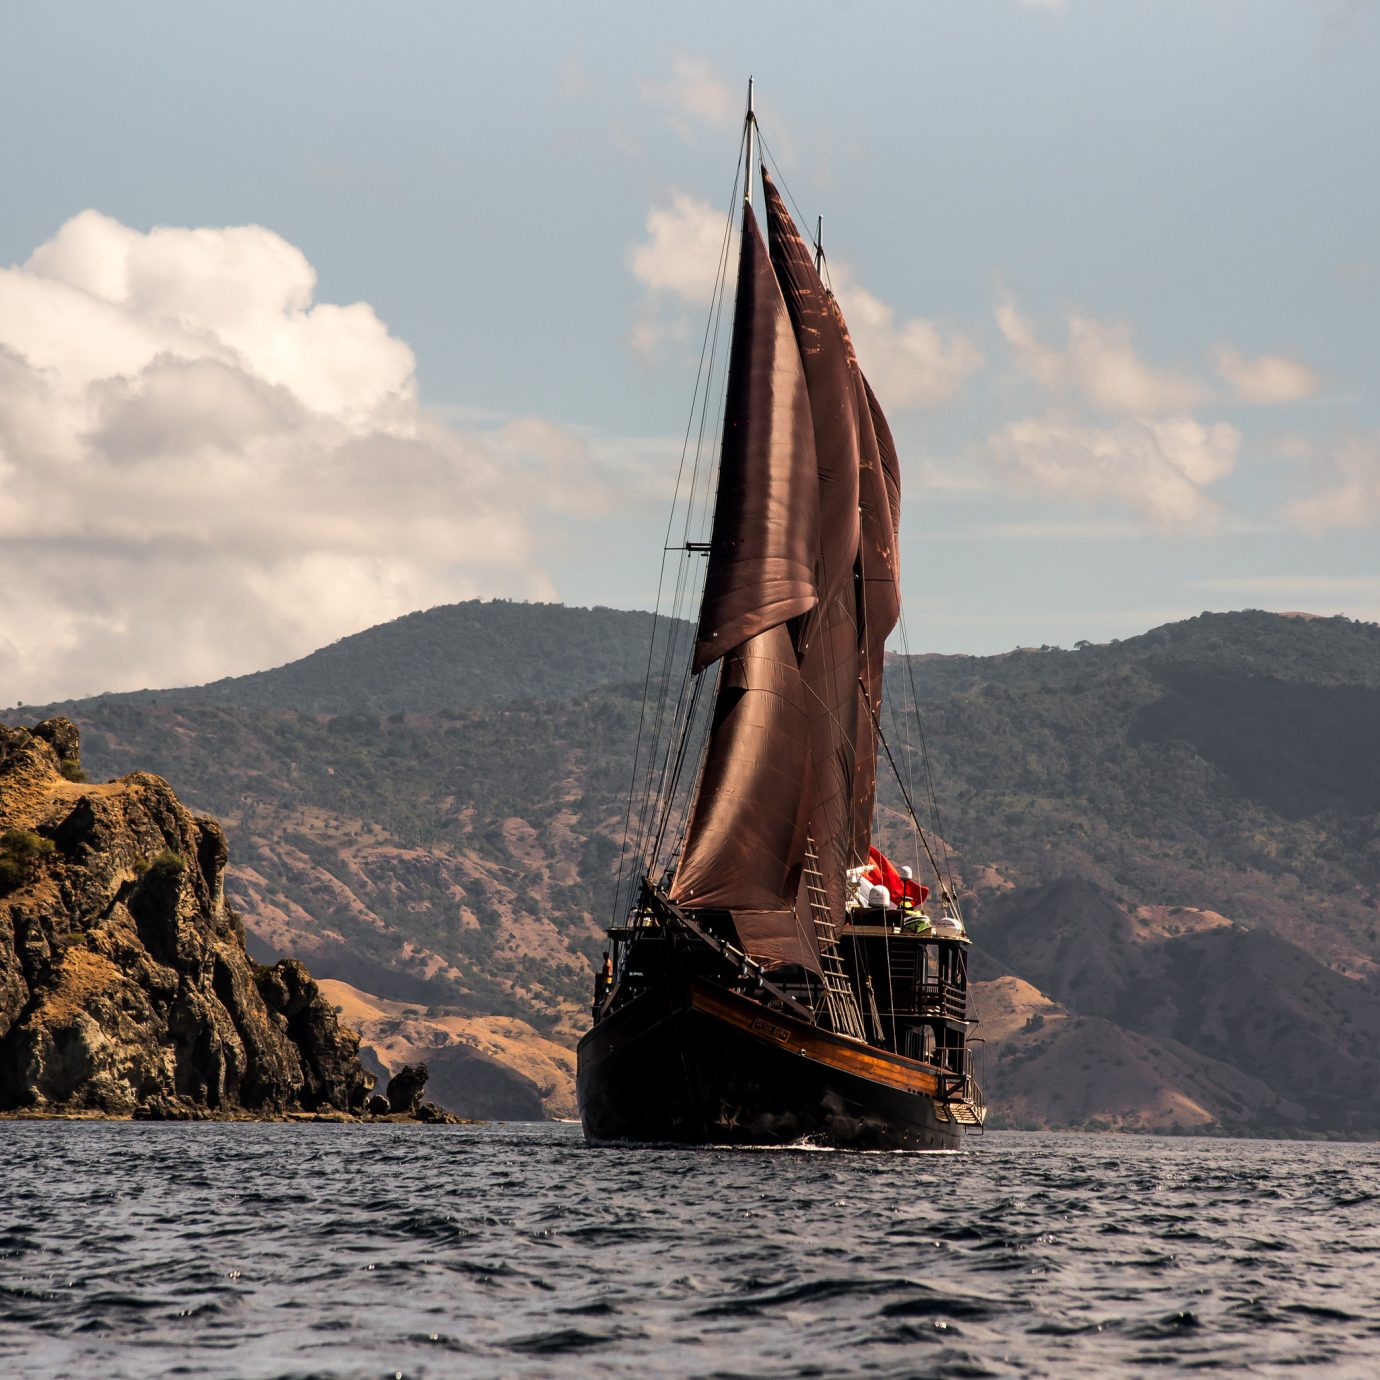 Luxury Travel Trip Ideas Sea water sky sail sailing ship sailboat galway hooker sailing Boat Ocean dhow schooner watercraft ship calm wave tall ship lugger